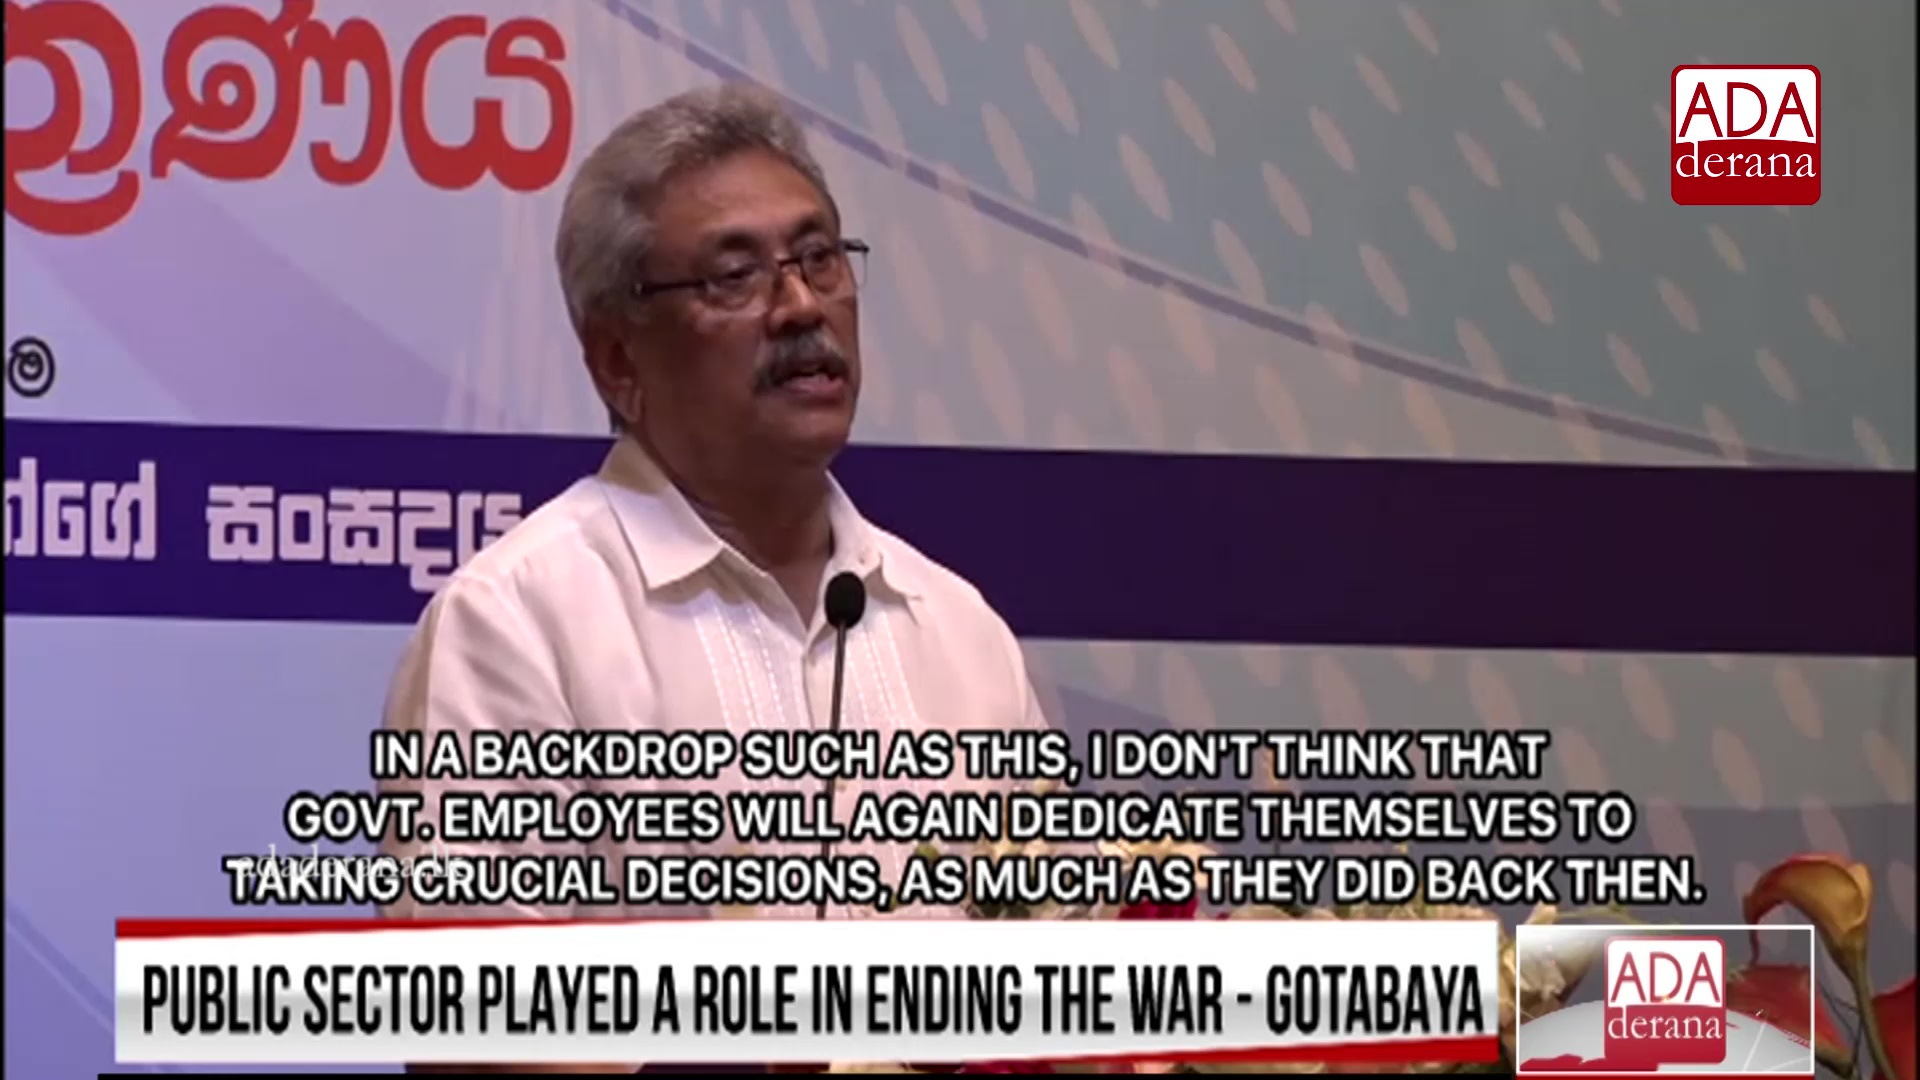 Laws should be made to protect public servants - Gotabaya (English)